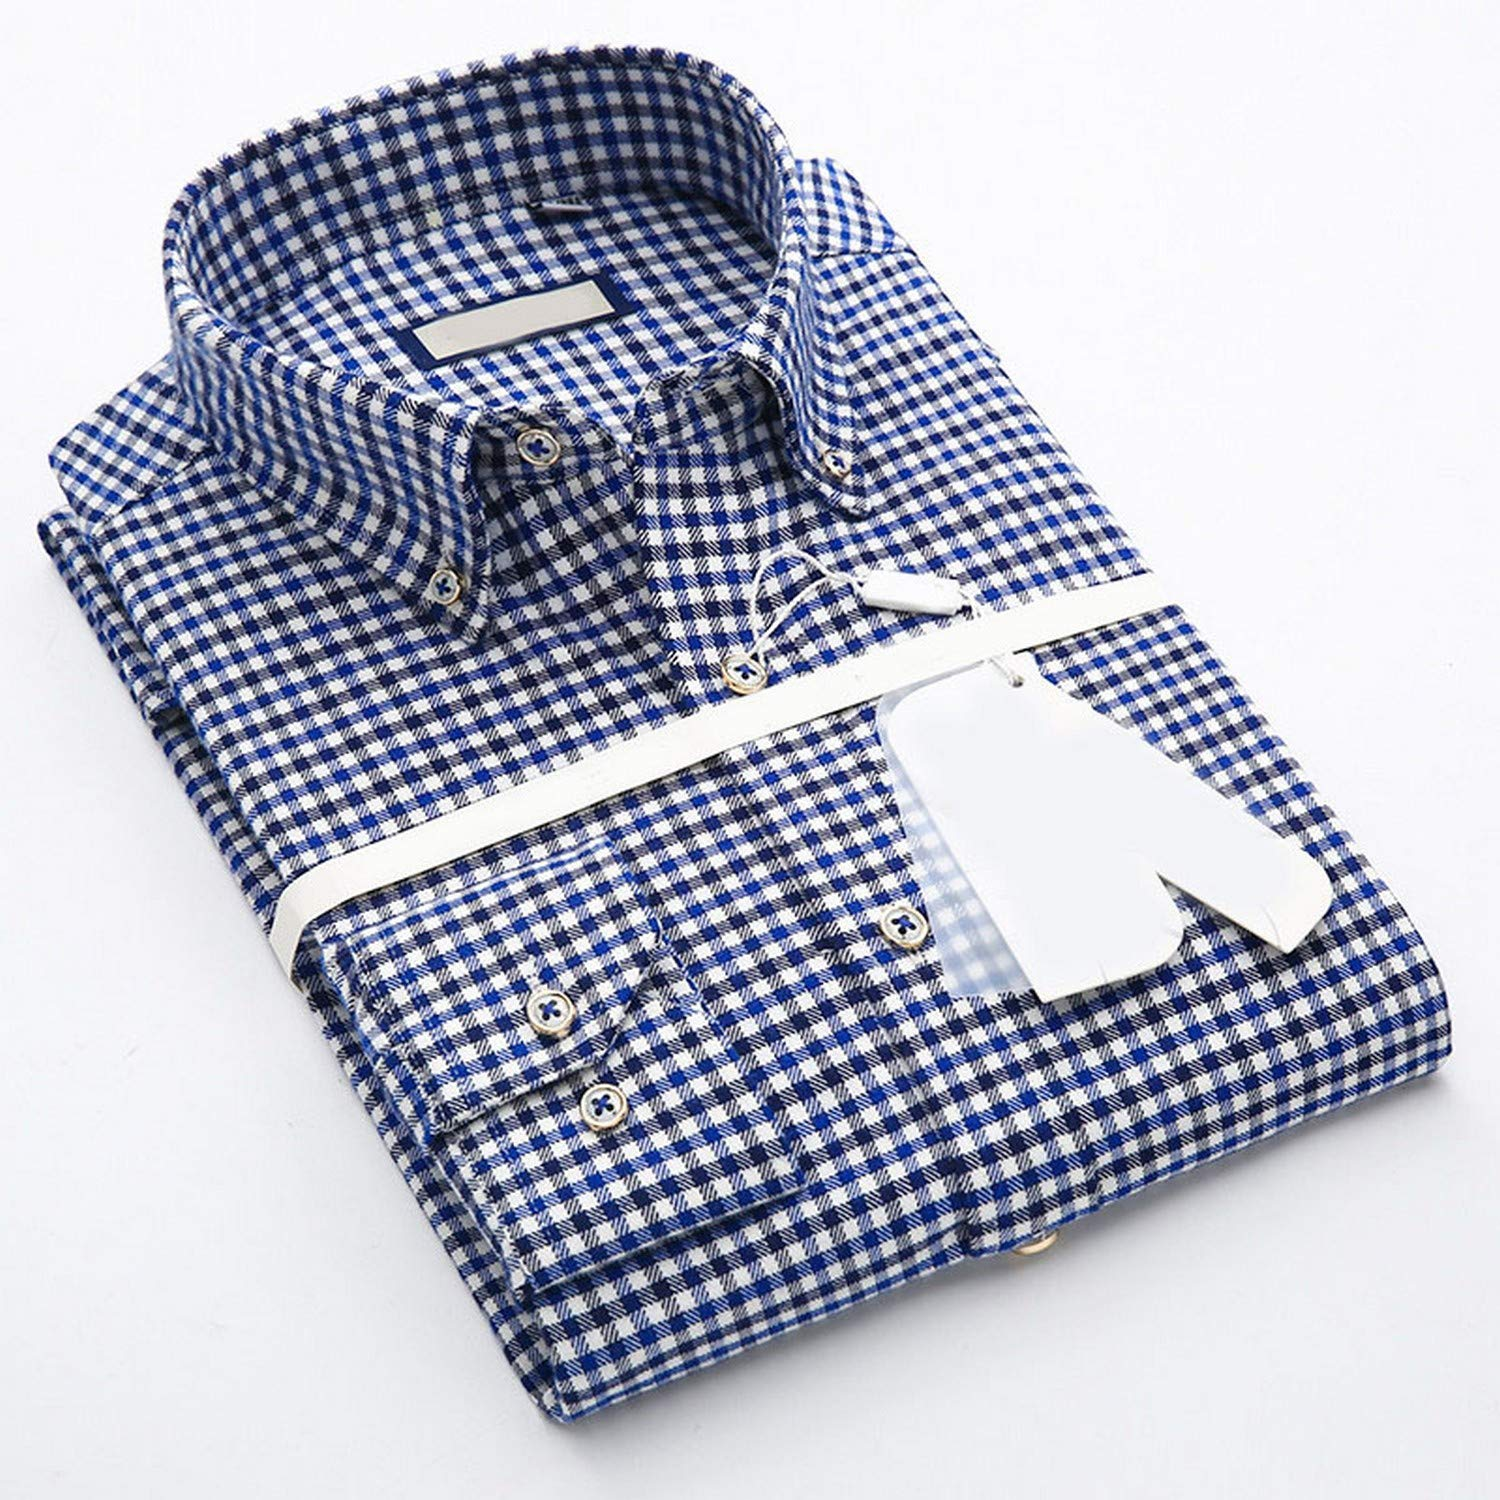 Autumn Grade Quality Plaid Long-Sleeved Button Down Collar Cotton Men Casual Shirts Soft Comfortable not Fade Male Tops